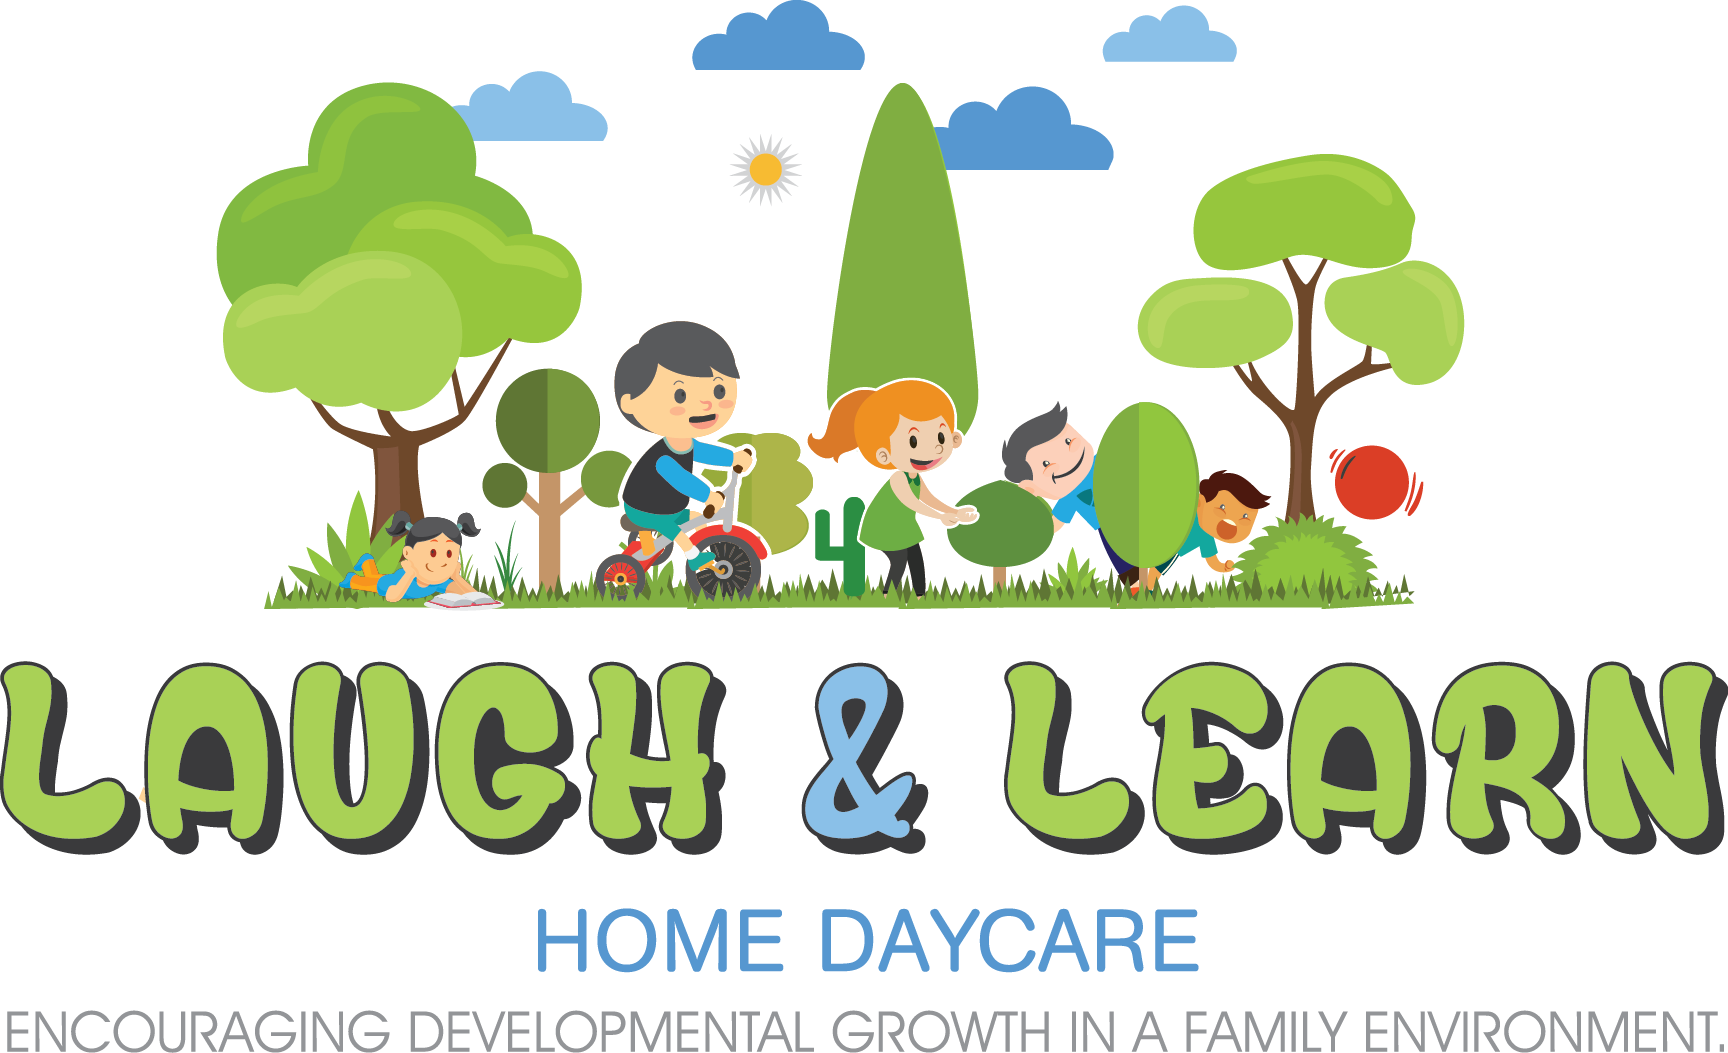 Book online laugh learn. Environment clipart family environment